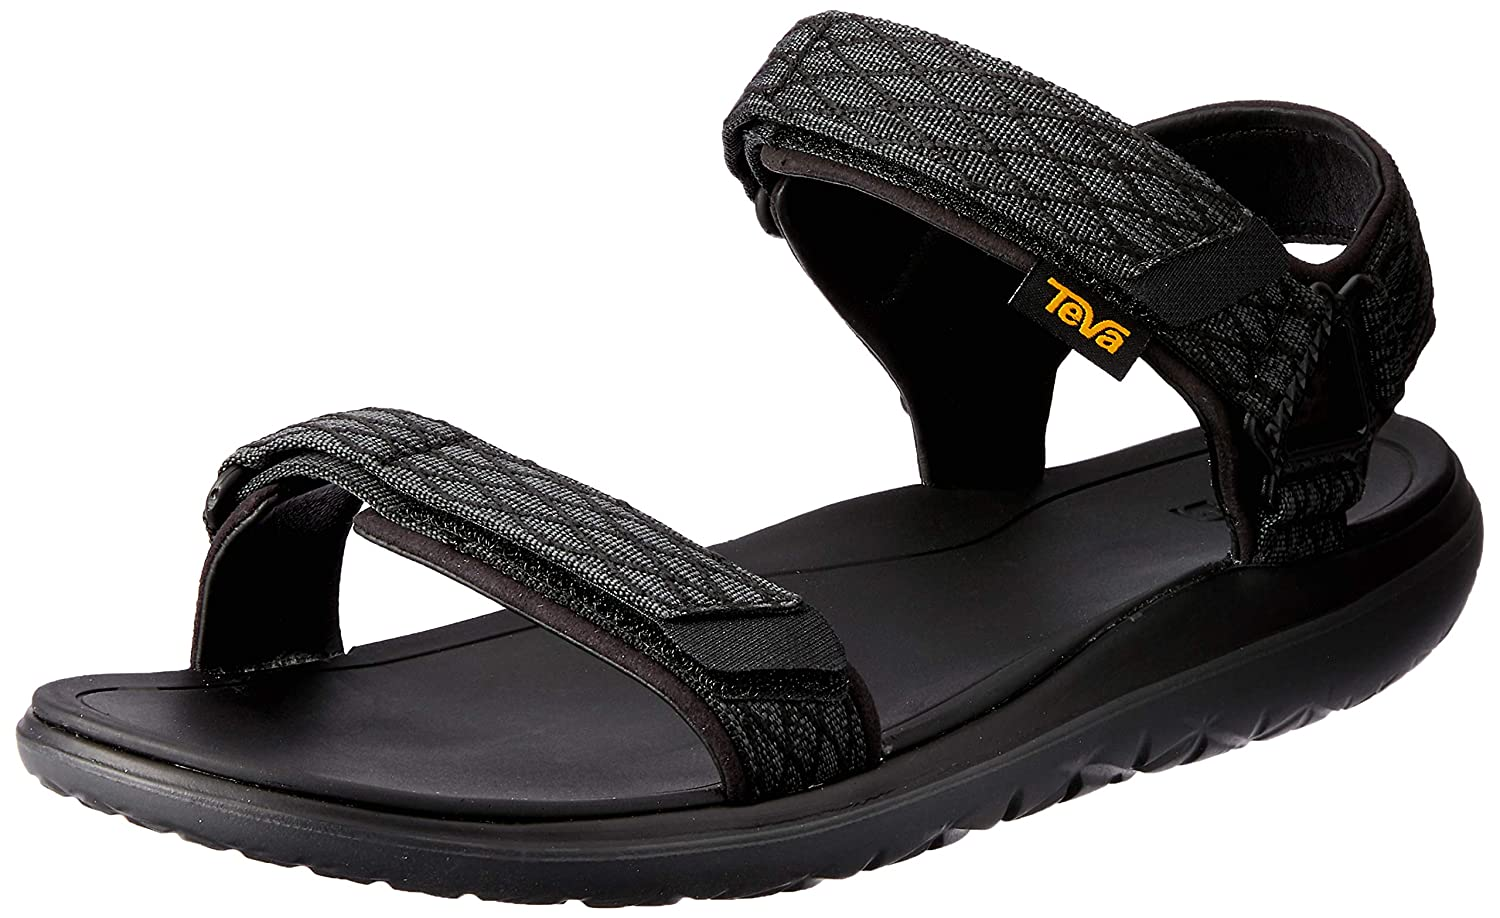 0a0a5594535a Teva Men s Terra - Float Universal Sports and Outdoor Lifestyle Sandal   Amazon.co.uk  Shoes   Bags